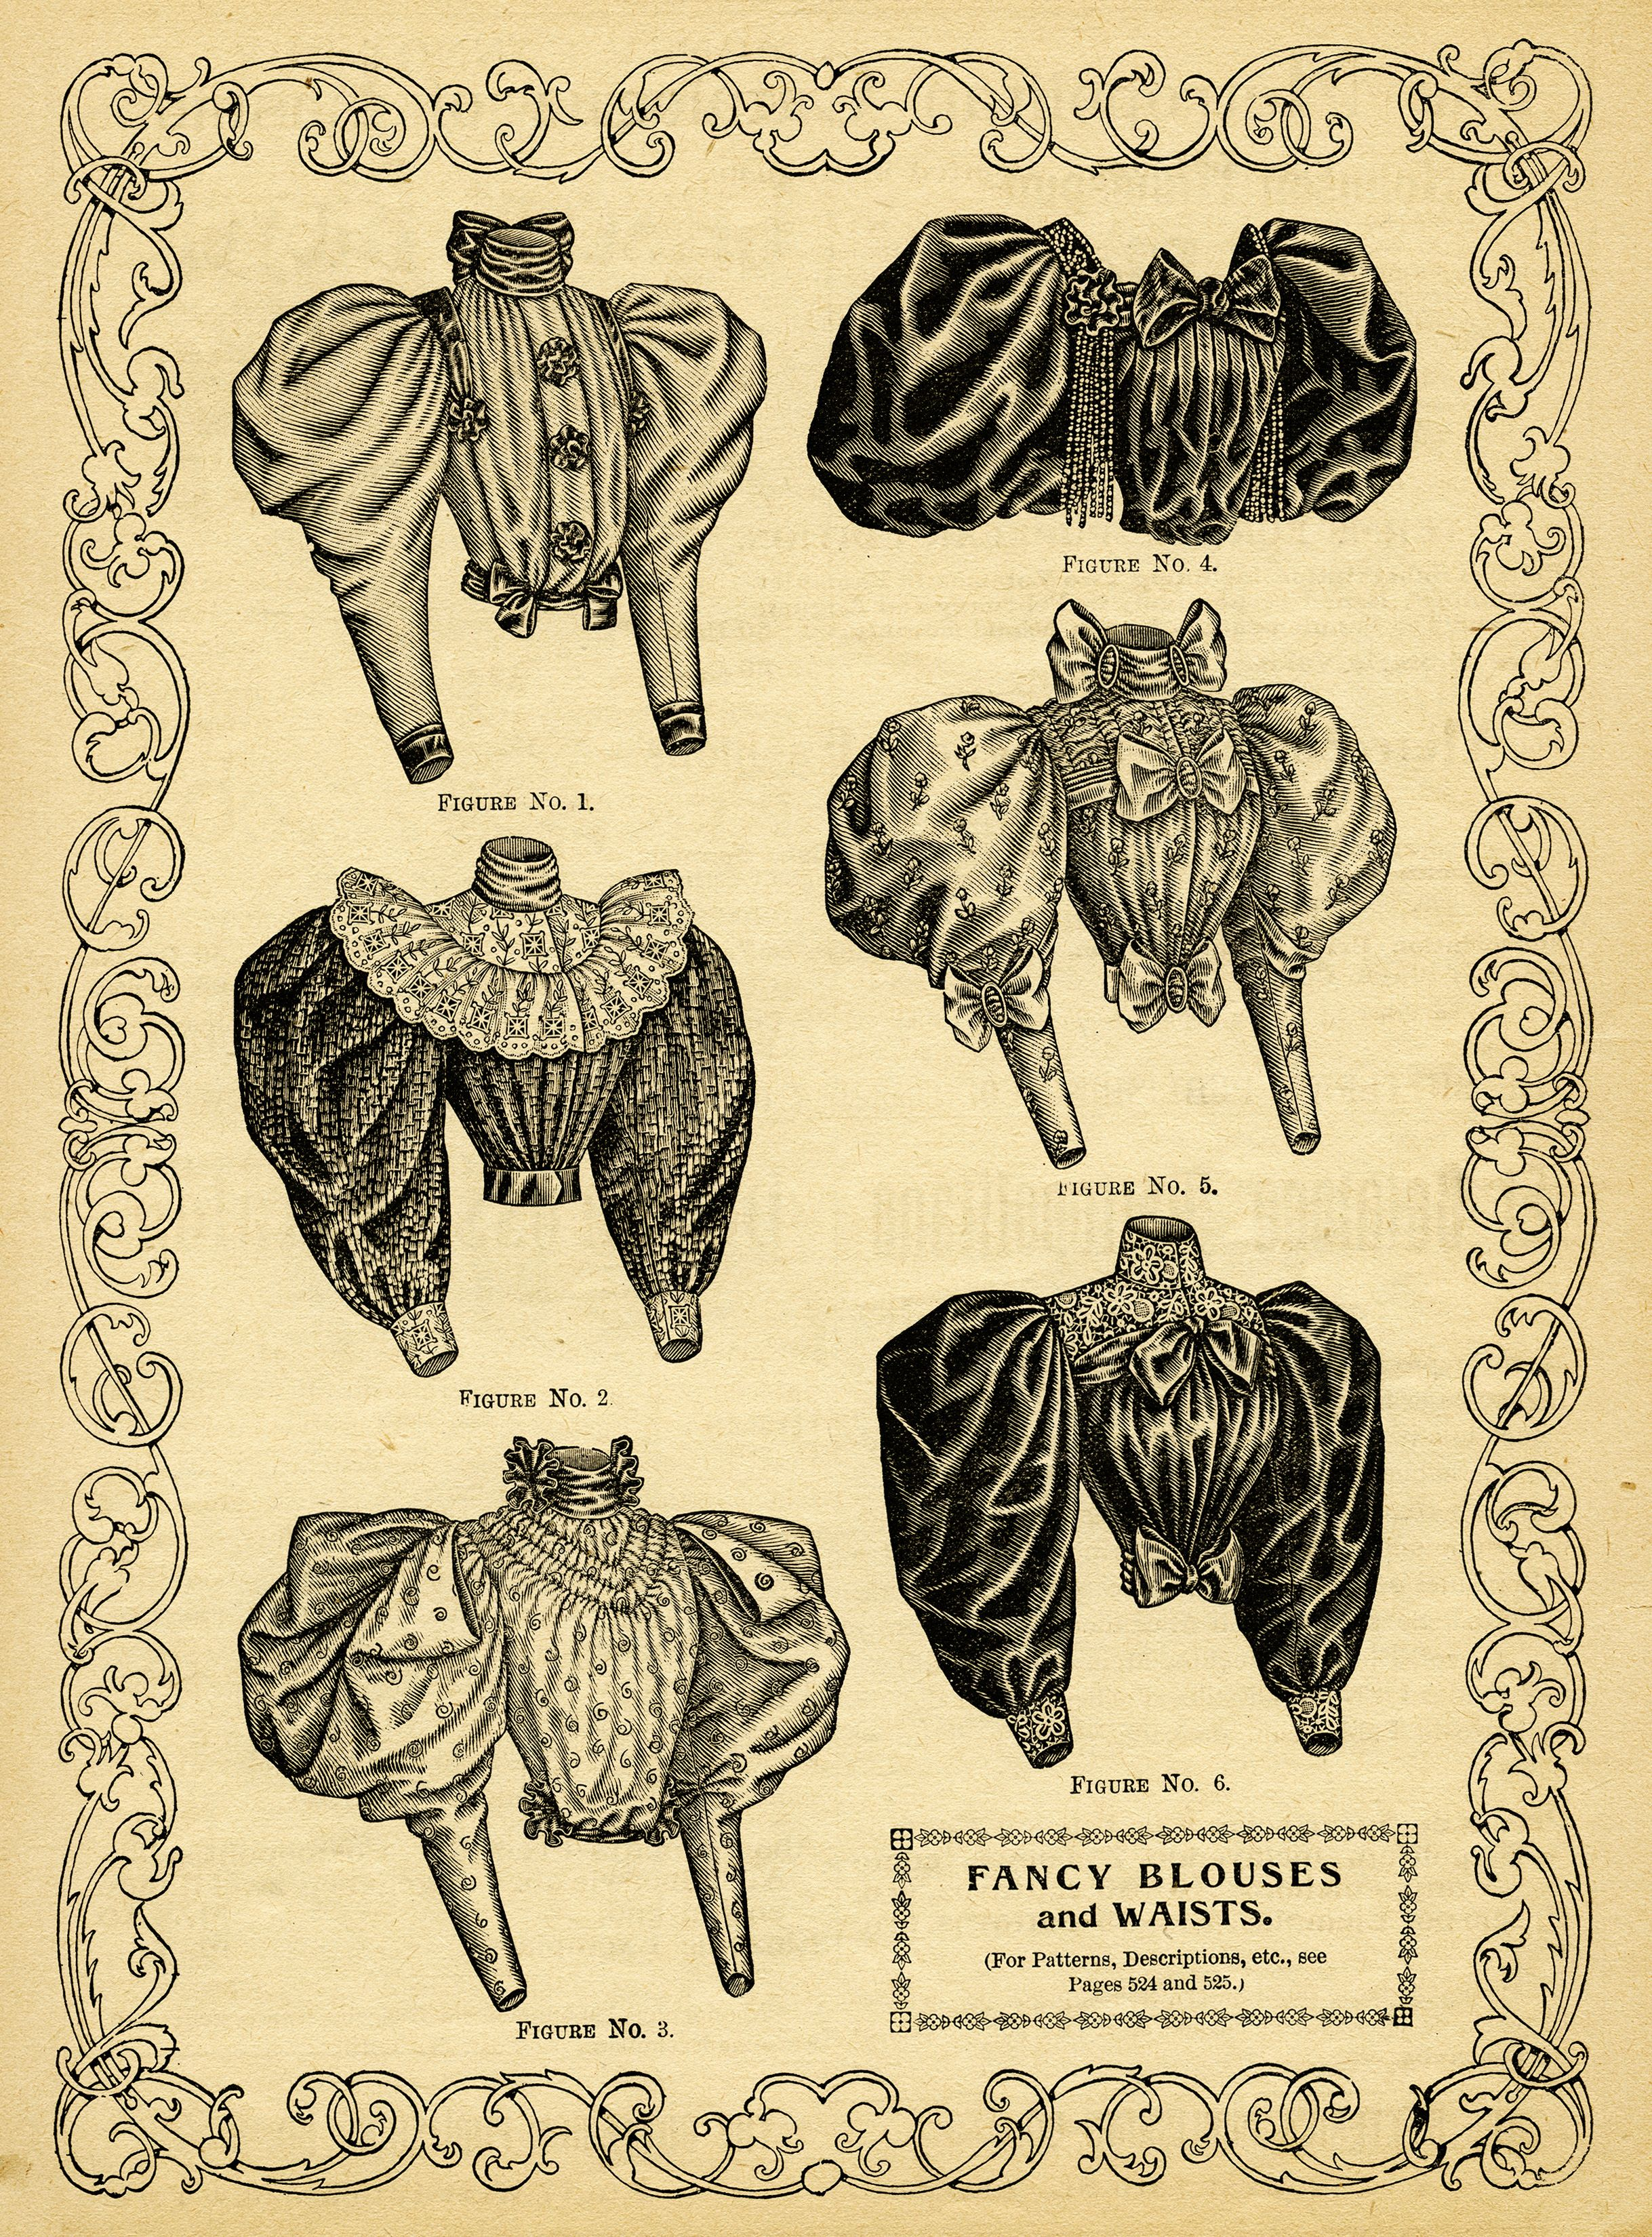 from the April 1895 issue of The Delineator magazine Victorian.